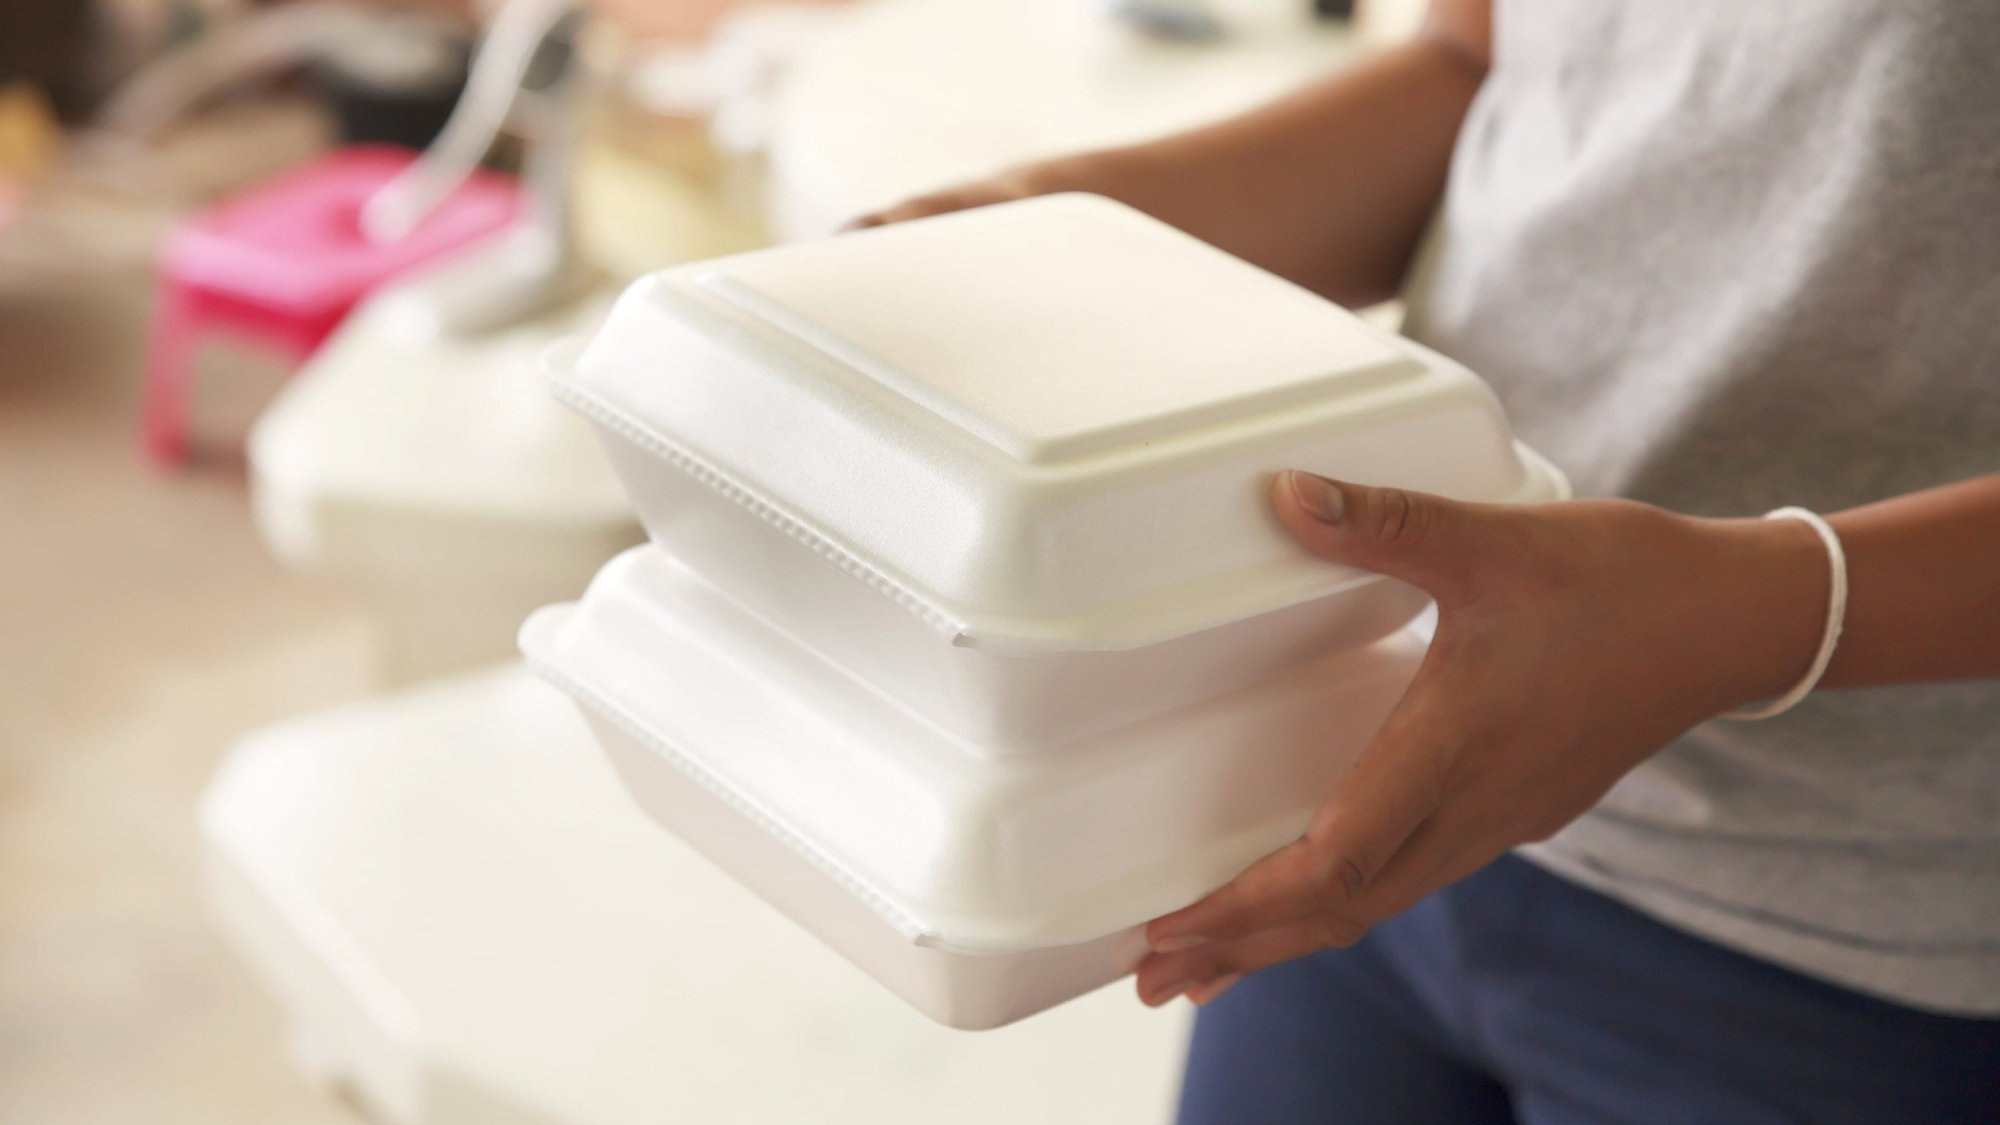 A person holding two polystyrene foam containers.